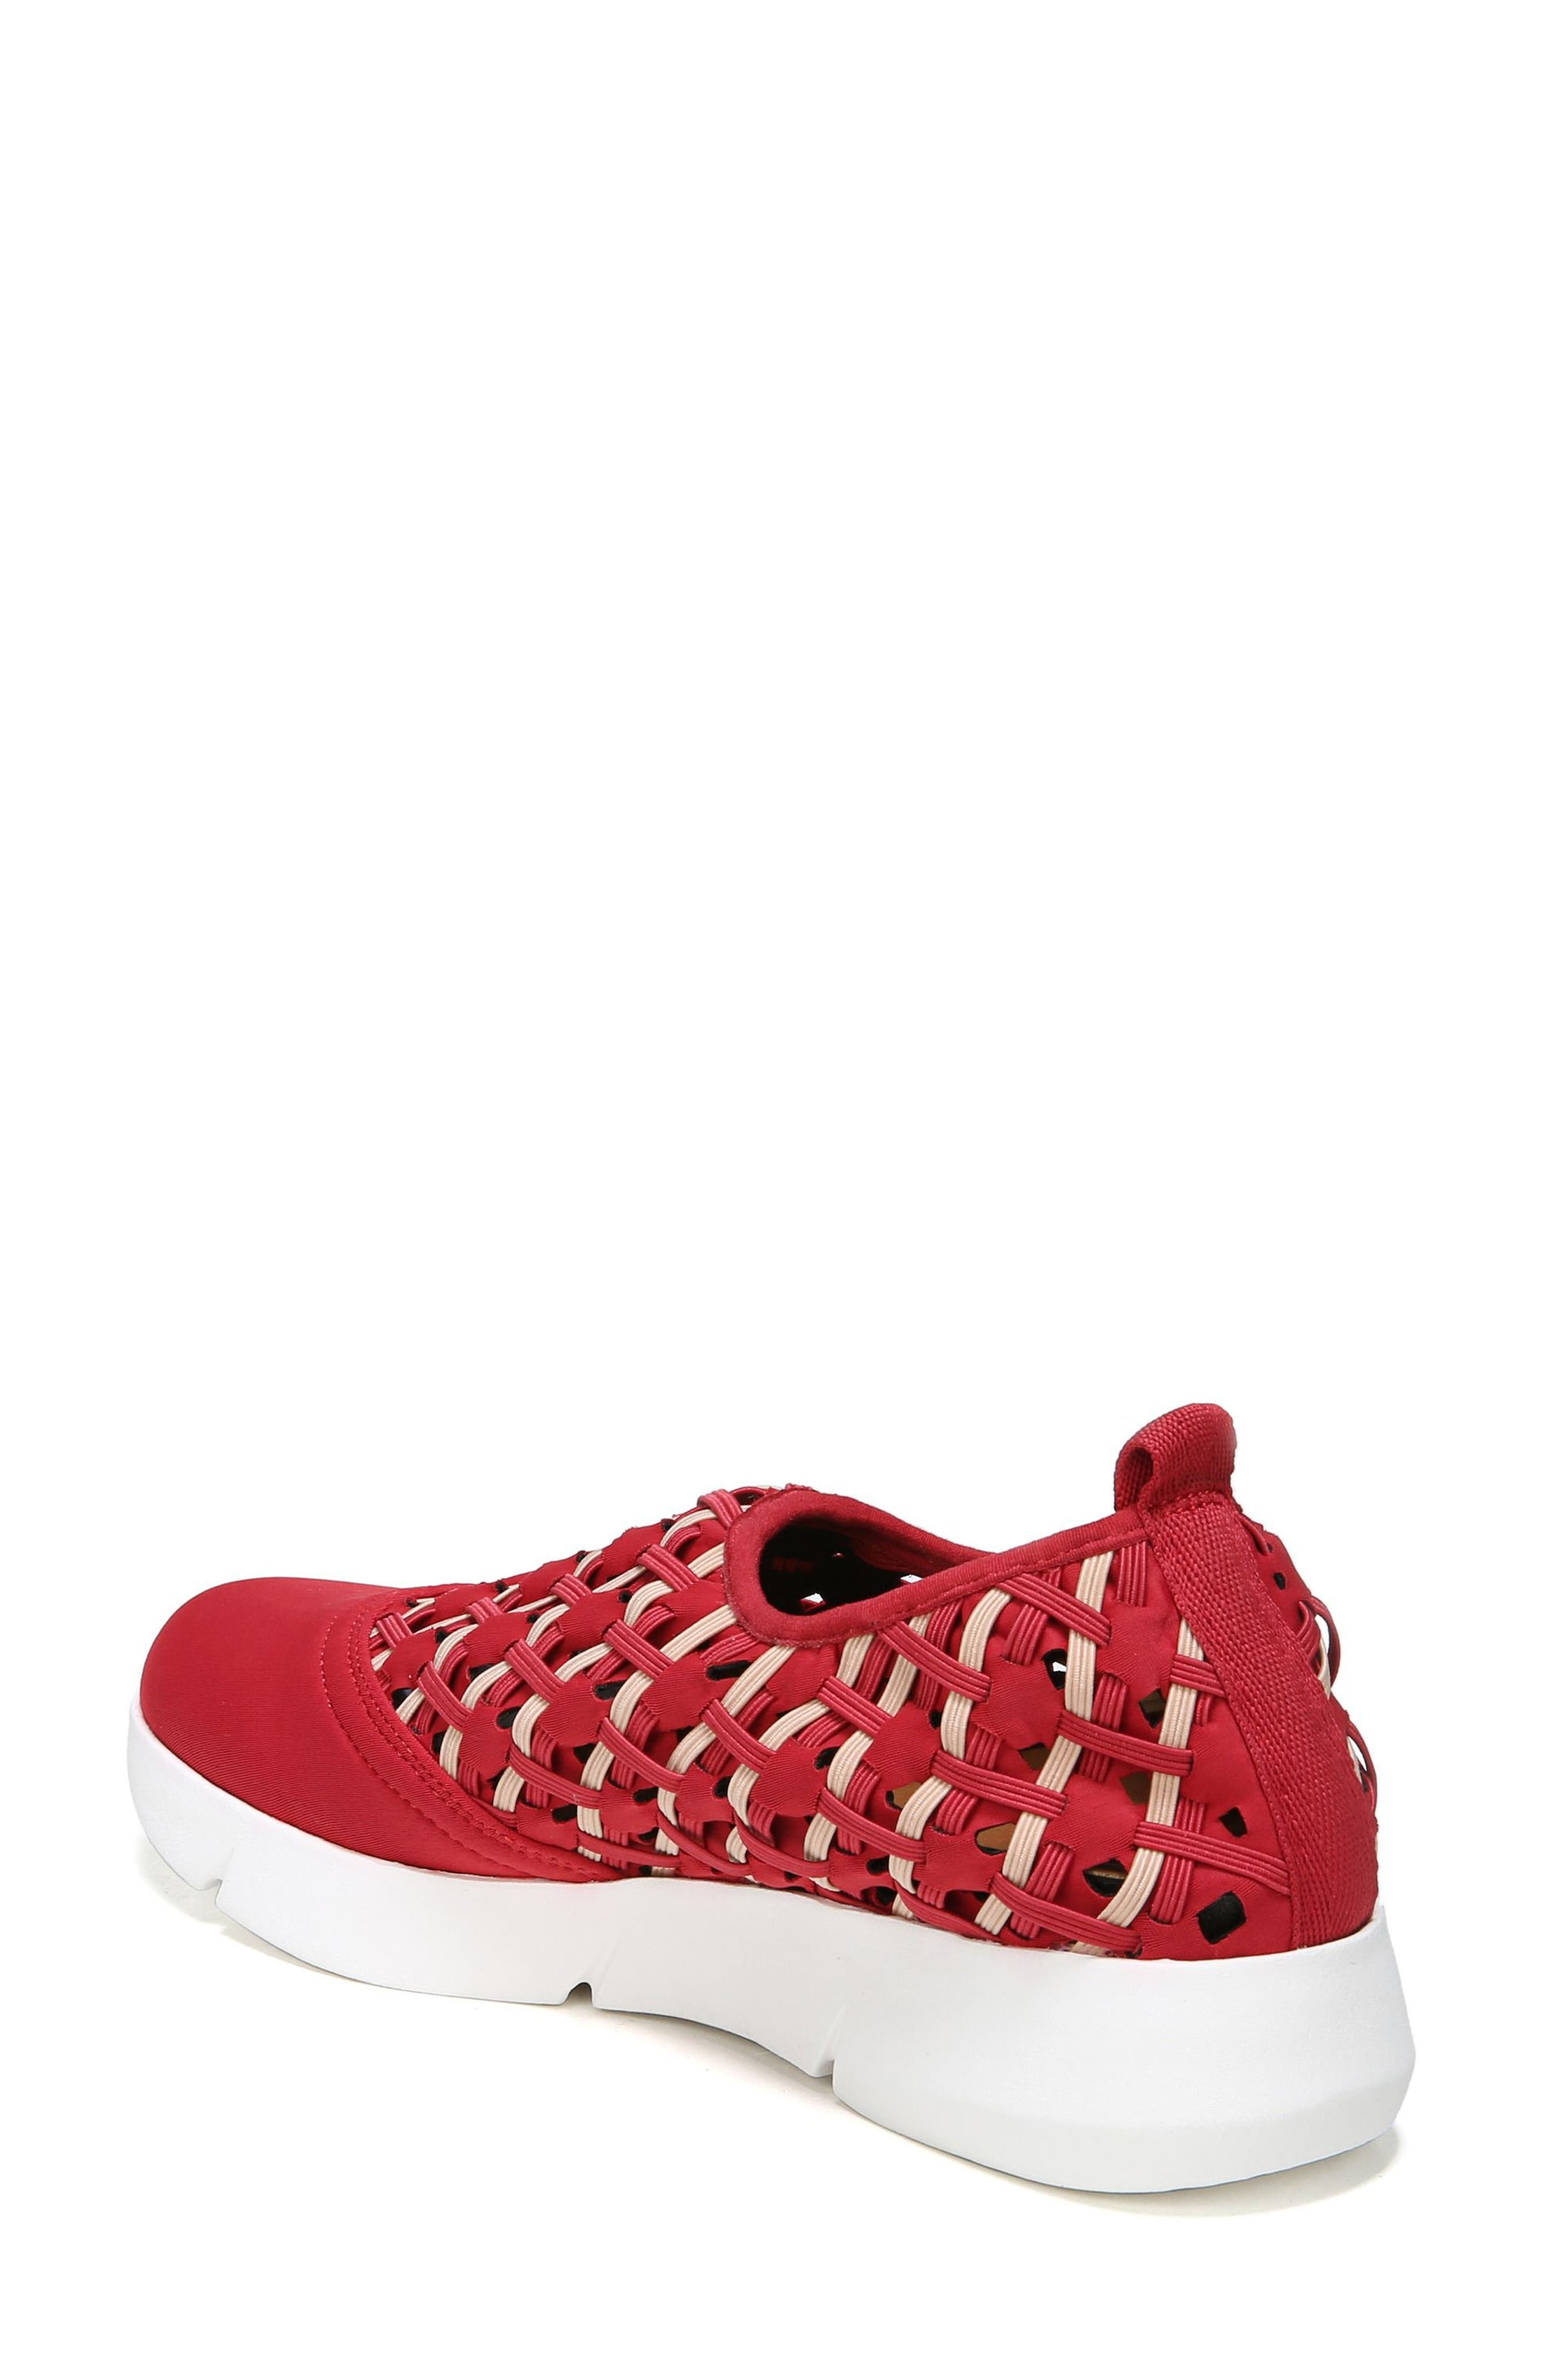 Fallan Woven Slip-On Sneaker,                             Alternate thumbnail 2, color,                             Deep Red Leather